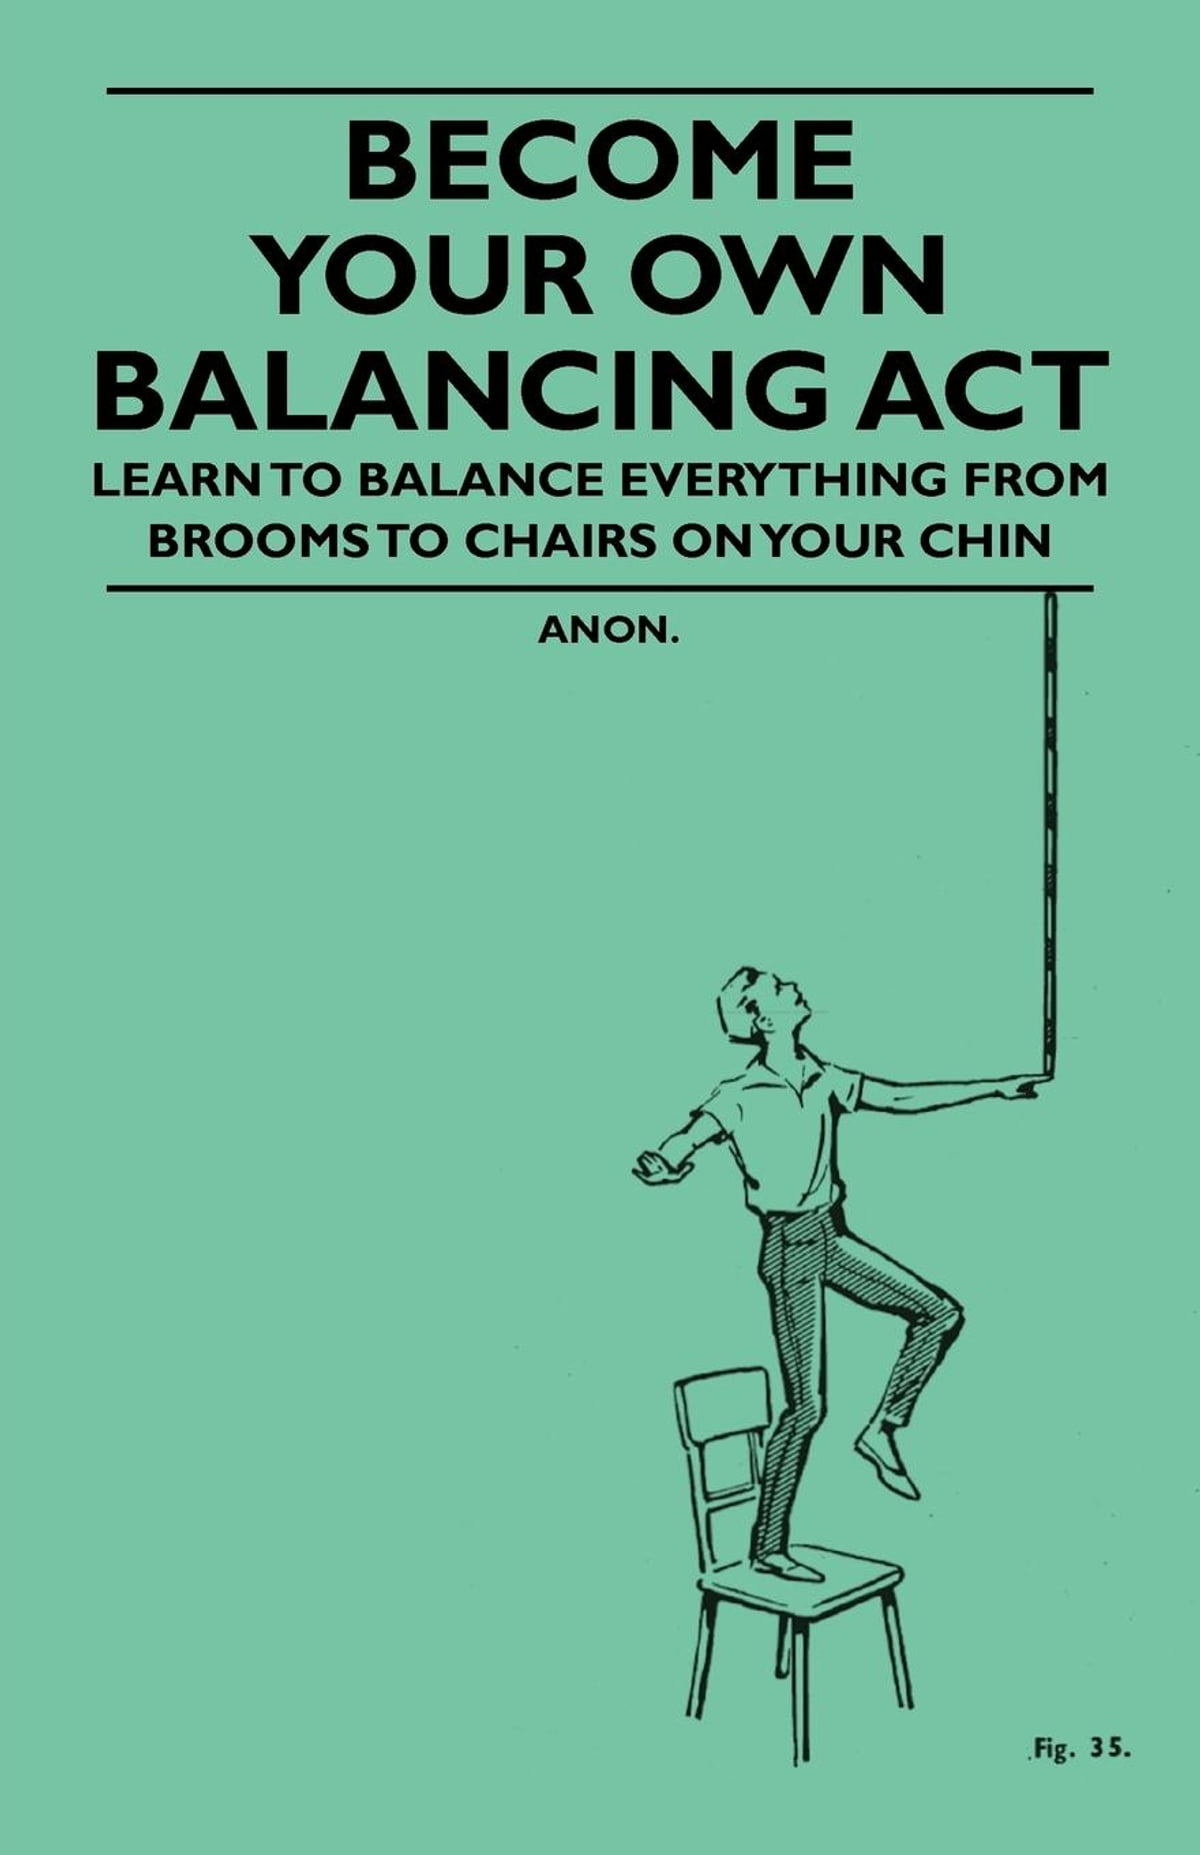 Outstanding Become Your Own Balancing Act Learn To Balance Everything From Brooms To Chairs On Your Chin Ebook By Anon Rakuten Kobo Beatyapartments Chair Design Images Beatyapartmentscom